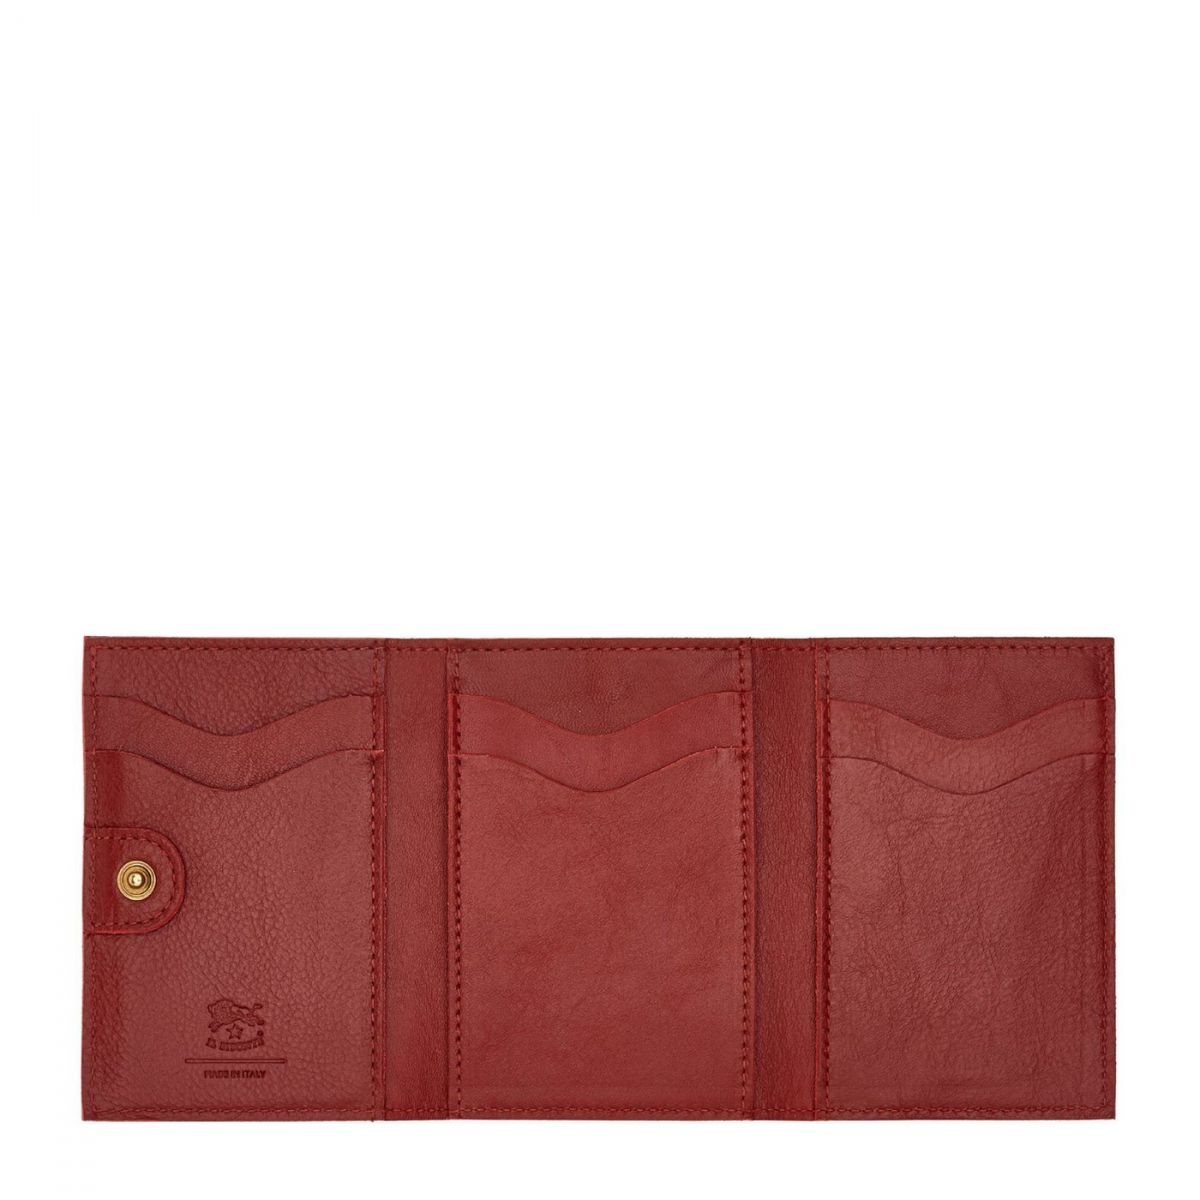 Women's Wallet  in Cowhide Leather SMW098 color Red | Details